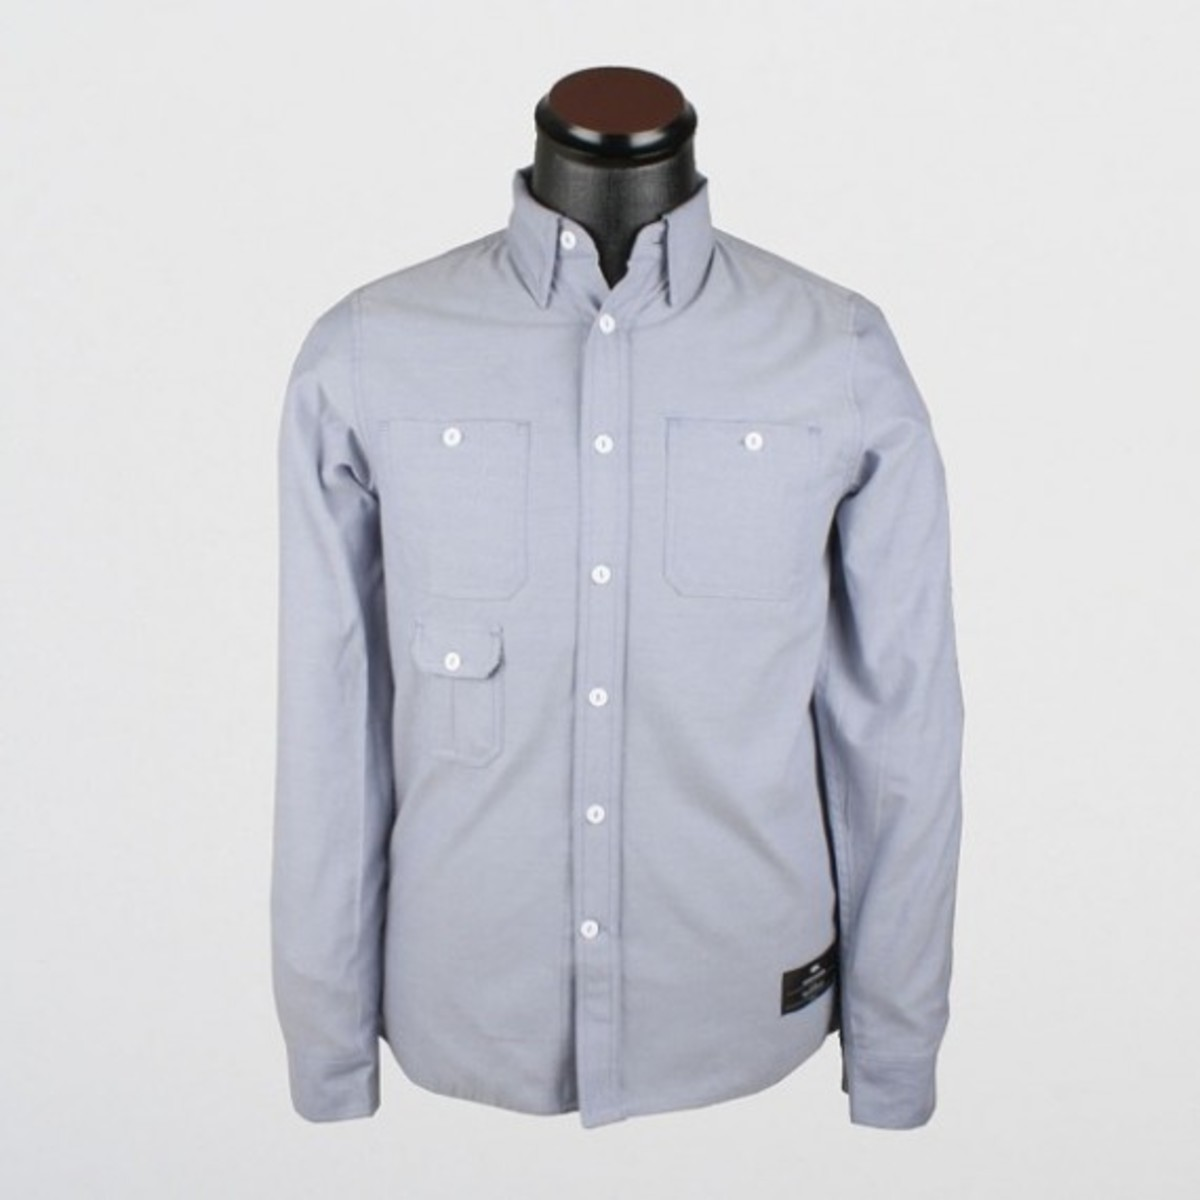 STPL-Freeman-Long-Sleeve-Button-Shirt-SP11_1